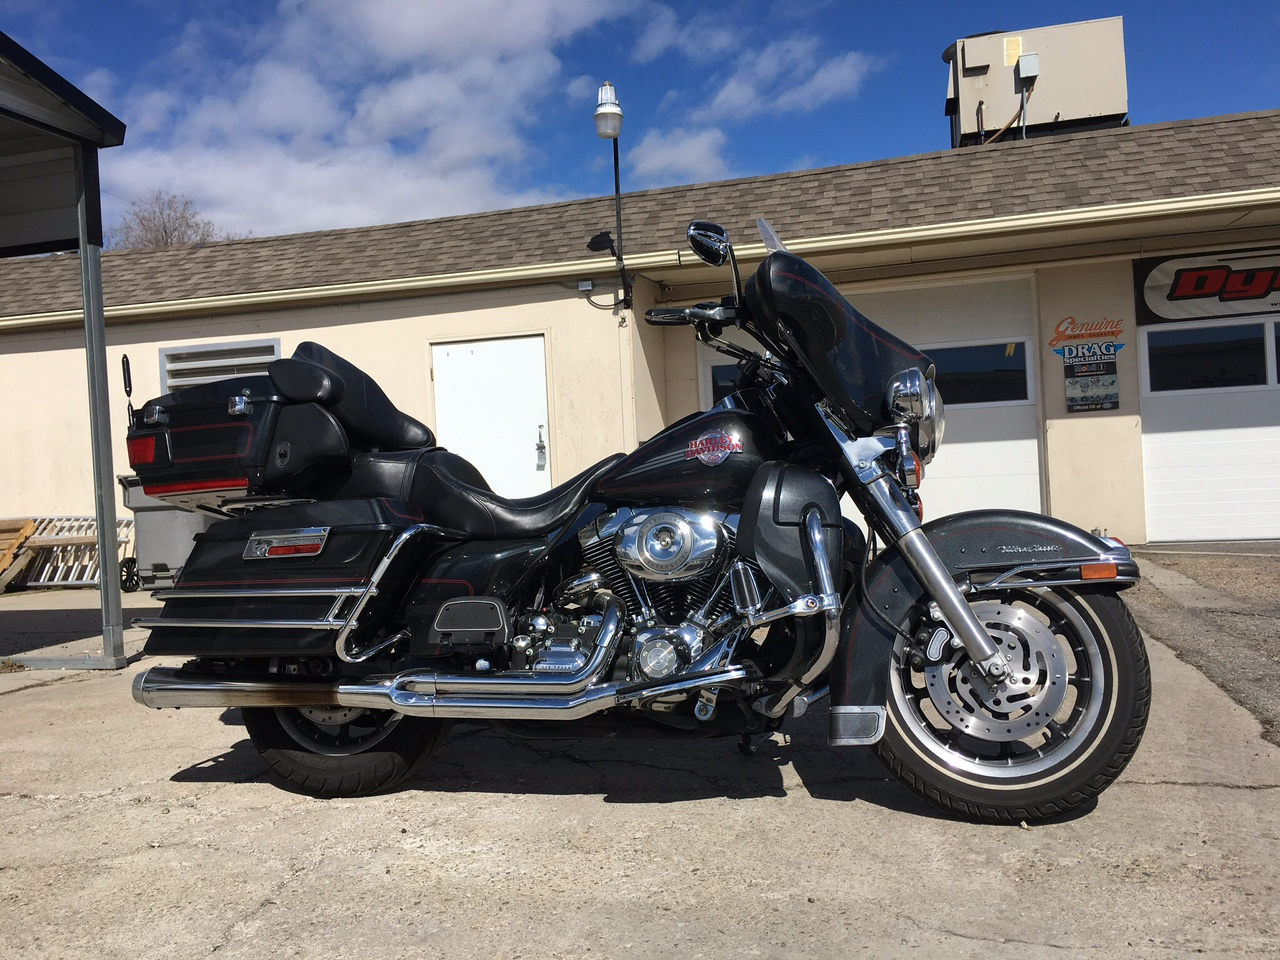 Jeff's 2007 Electra Glide